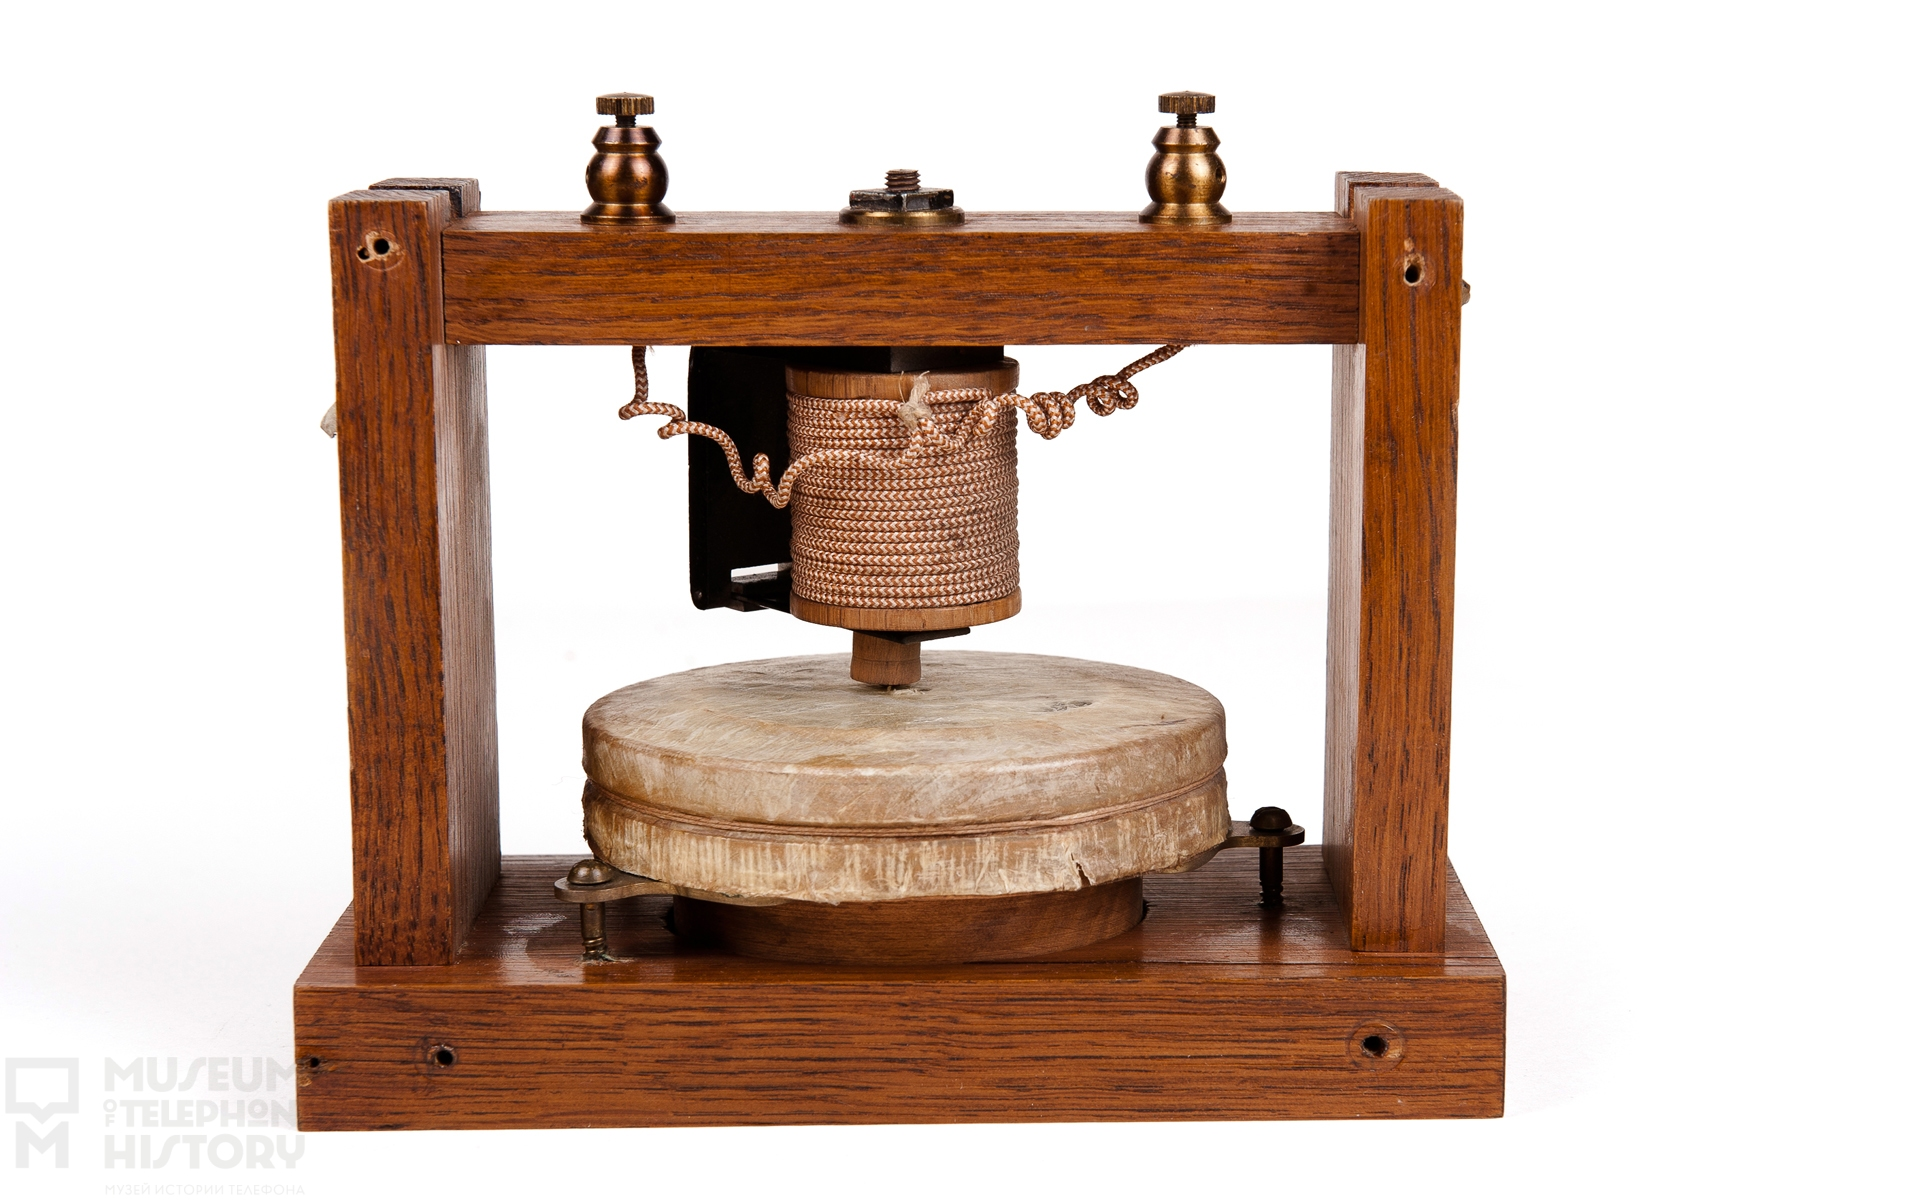 Bell`s telephone